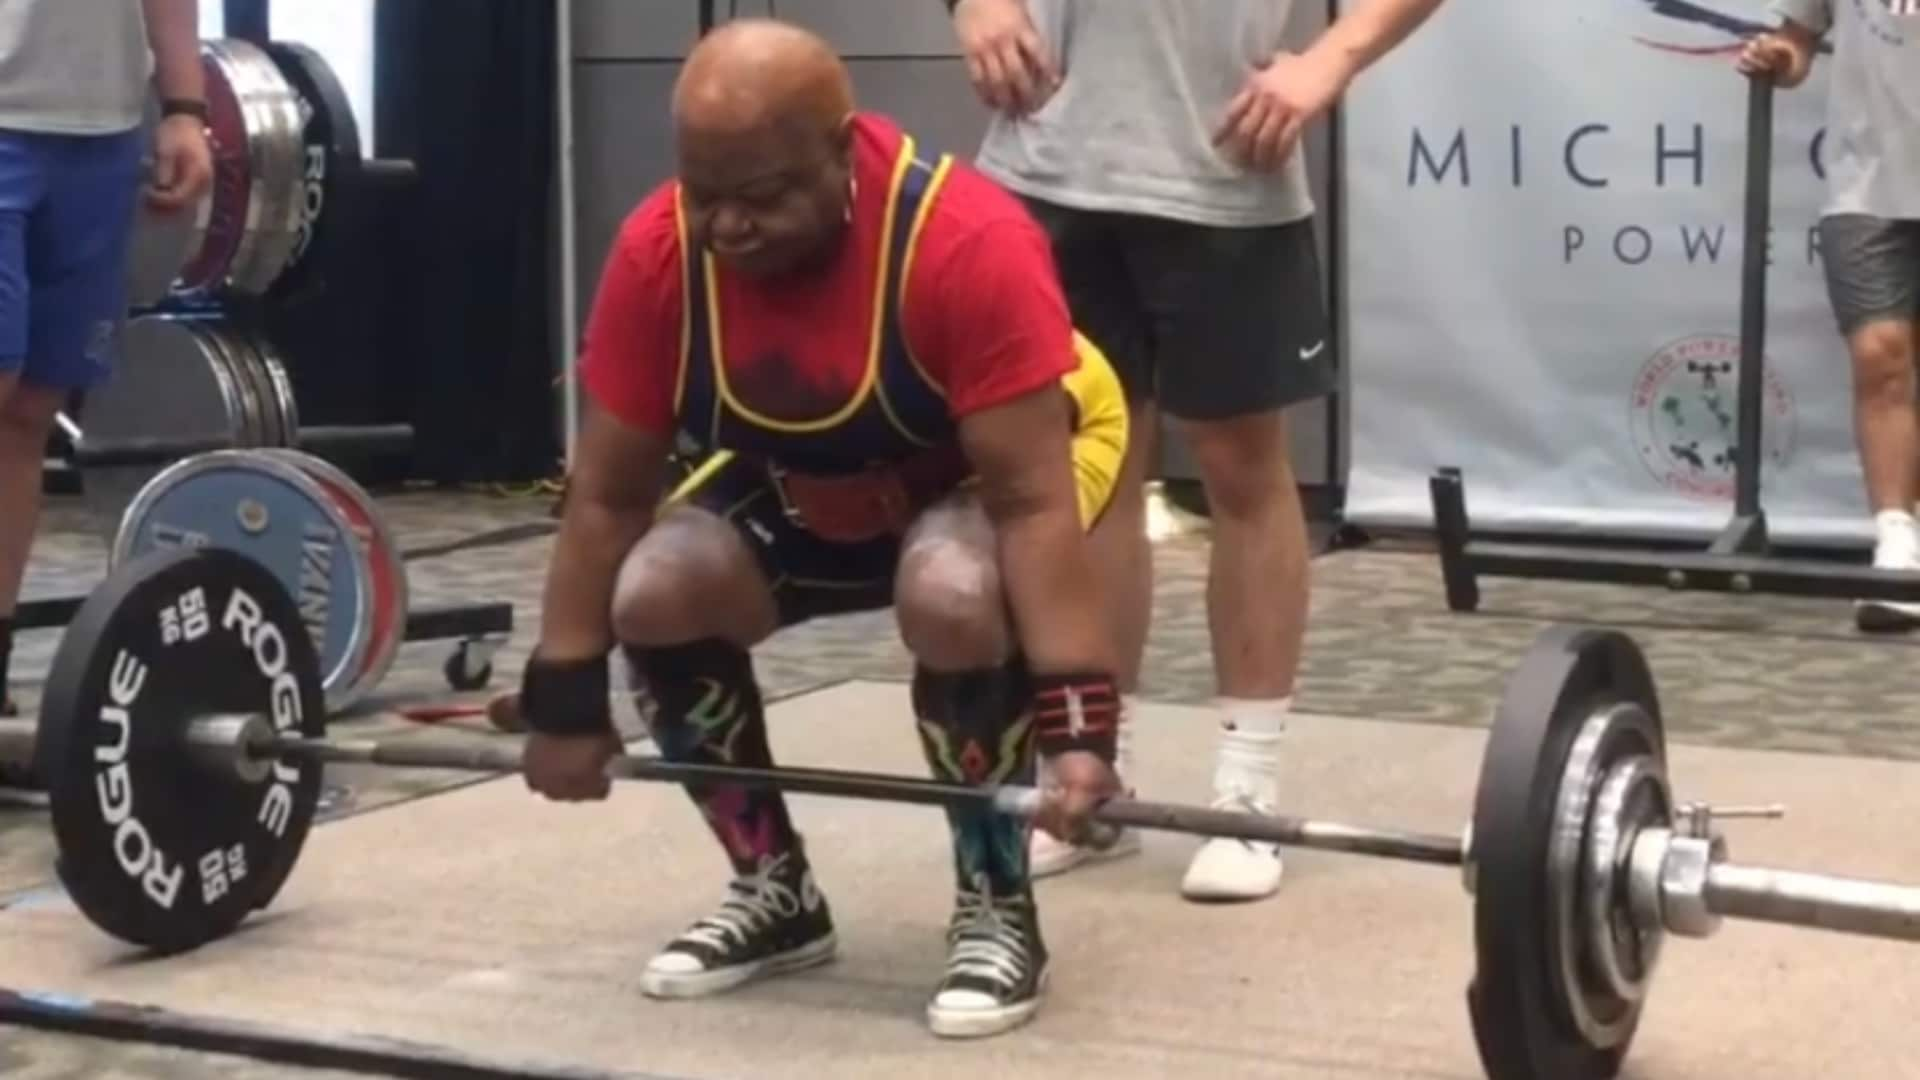 Detroit woman, 78, sets 19 world records for powerlifting – TheGrio